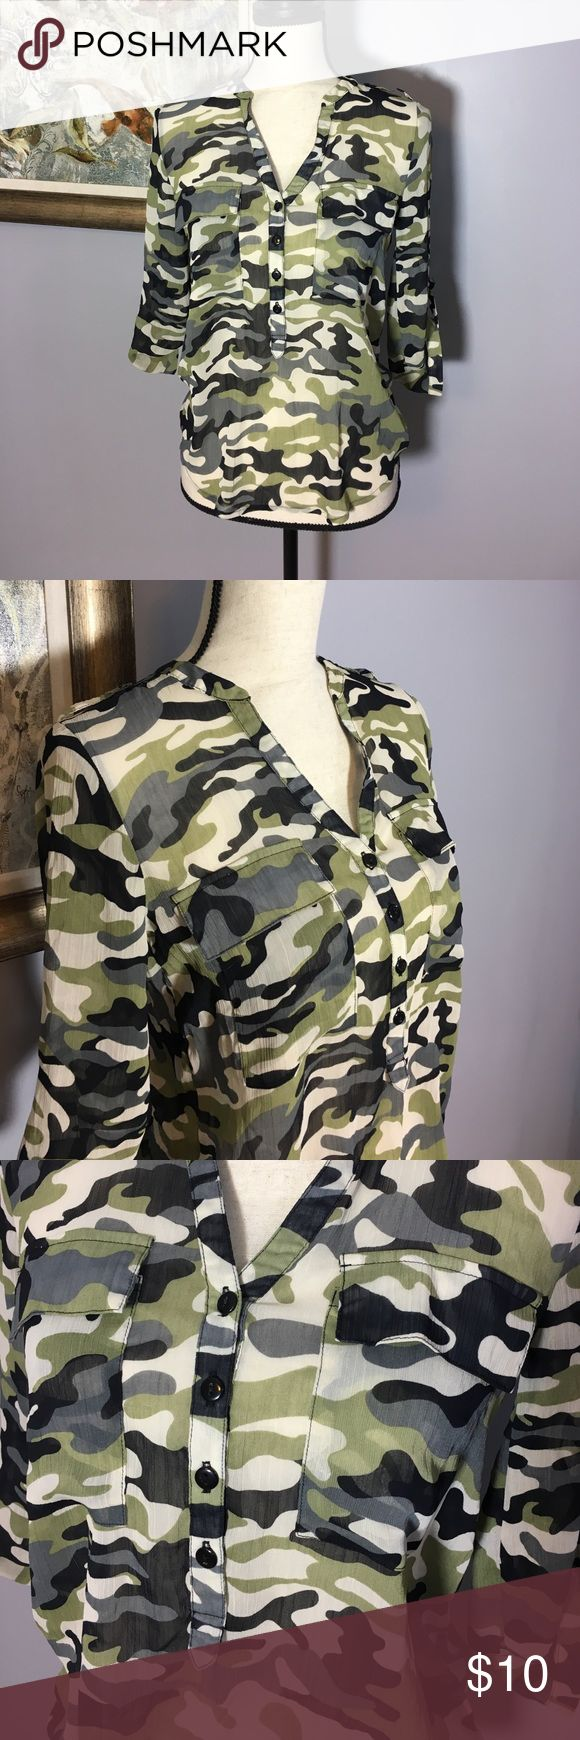 Sheer Camo Hi-Lo Blouse Cool semi sheer camouflage top.  Excellent Used Condition.  Two breast pockets. Button up sleeves.  Size Juniors S.  100% Poly Almost Famous Tops